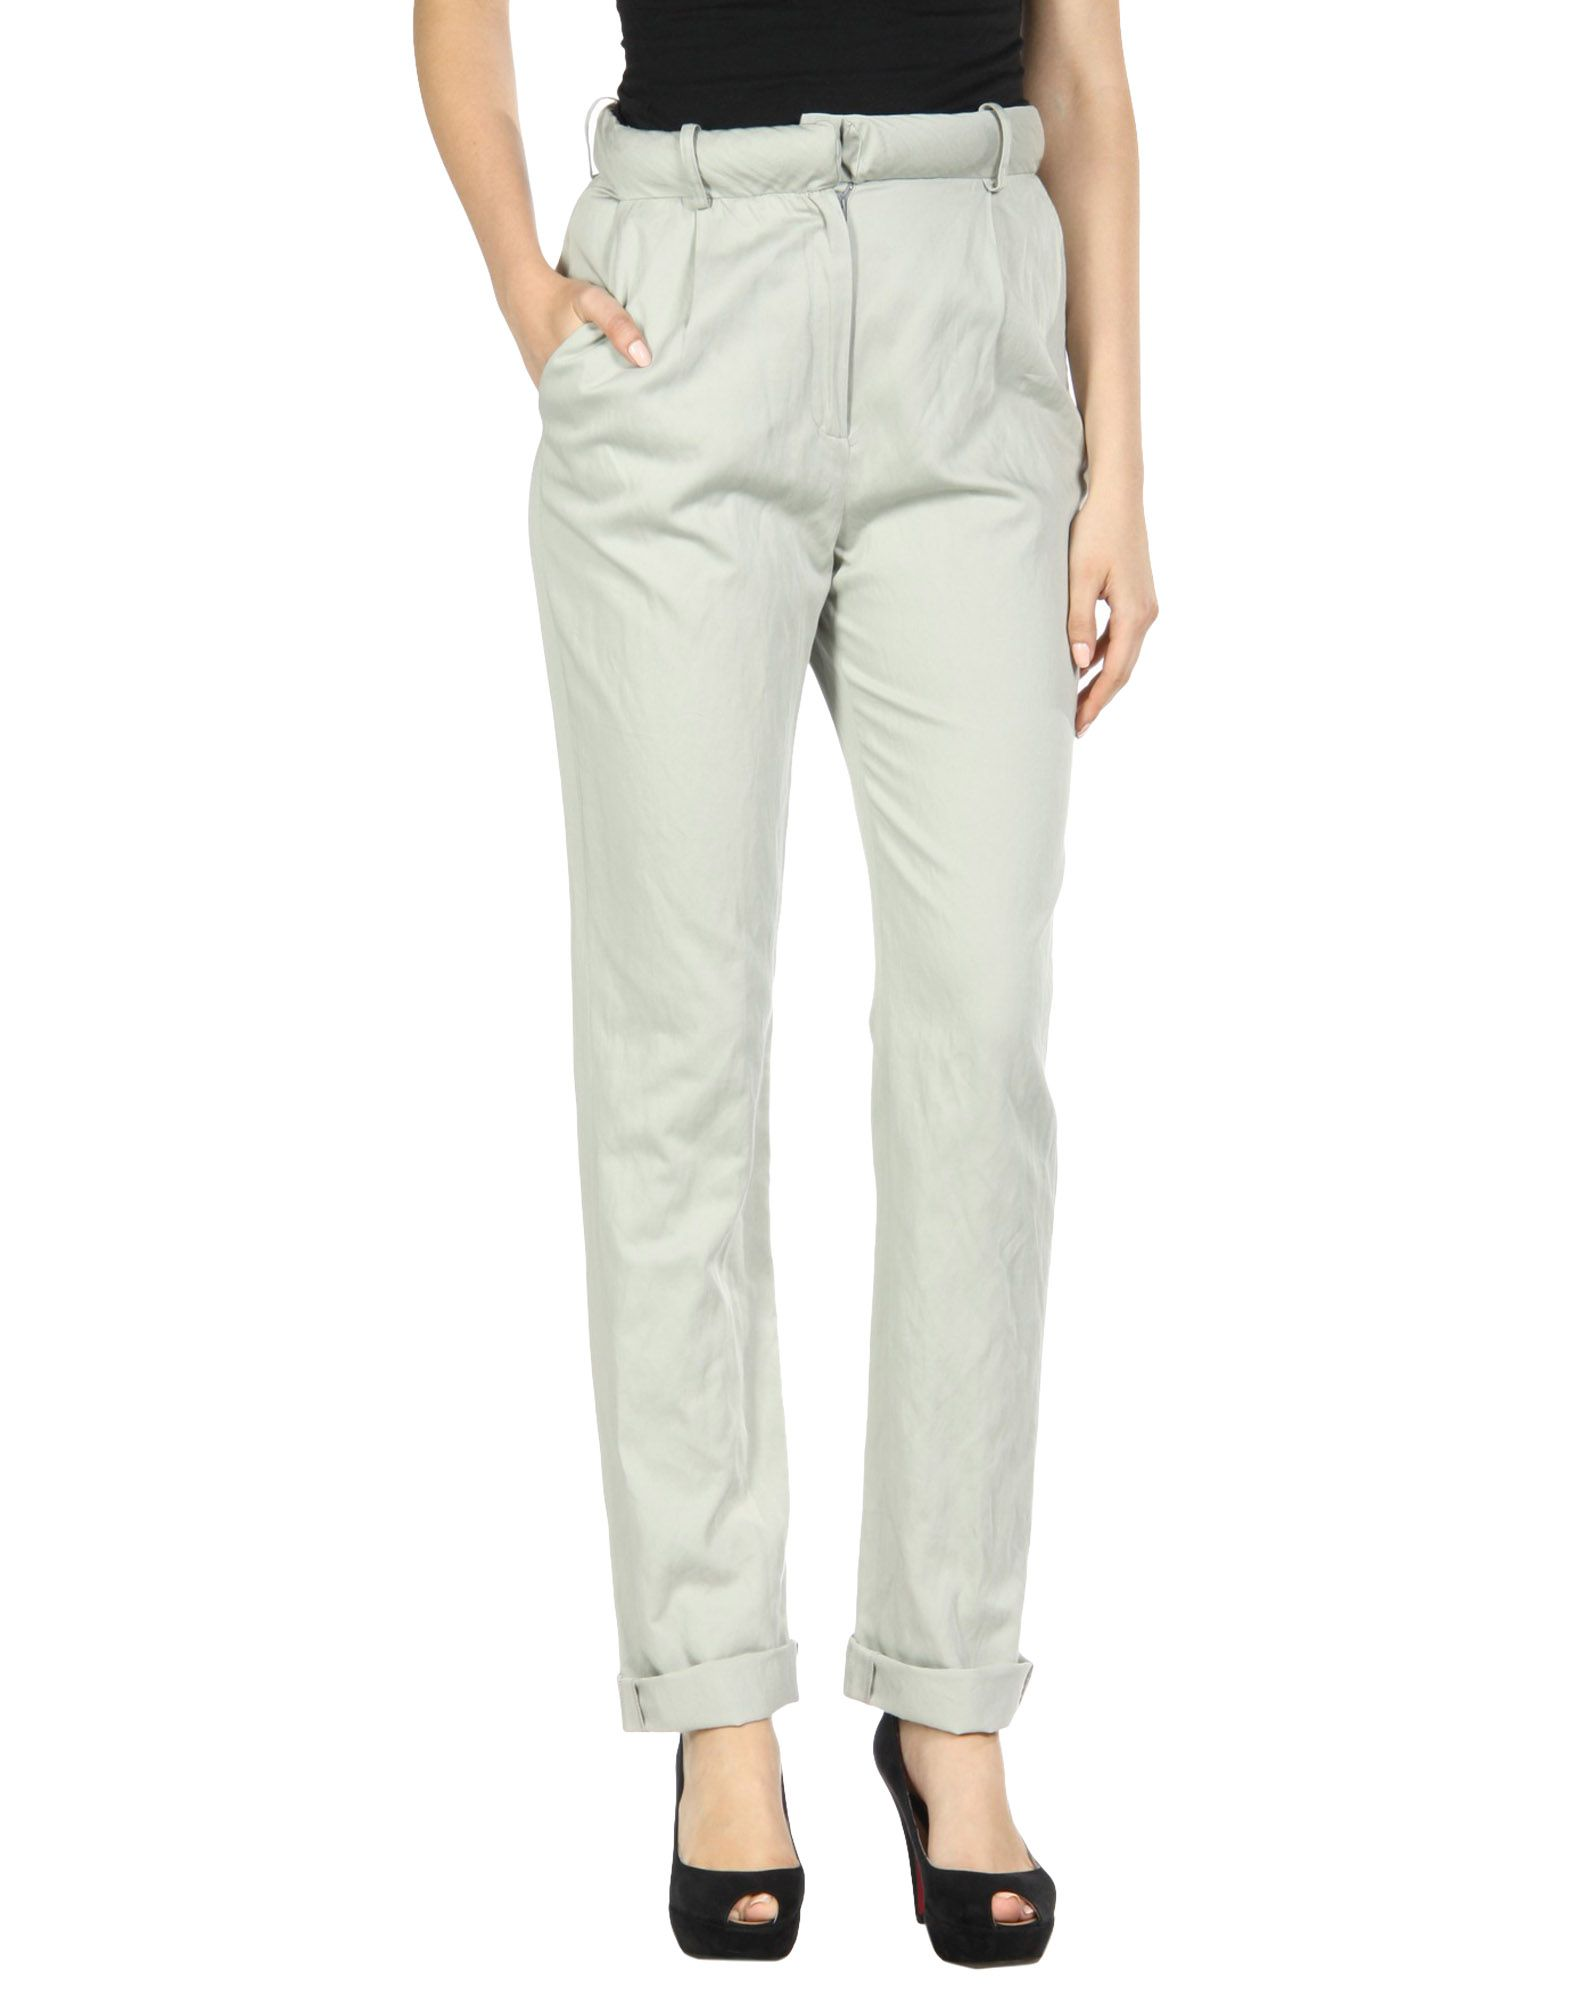 BACK Casual Pants in Light Grey